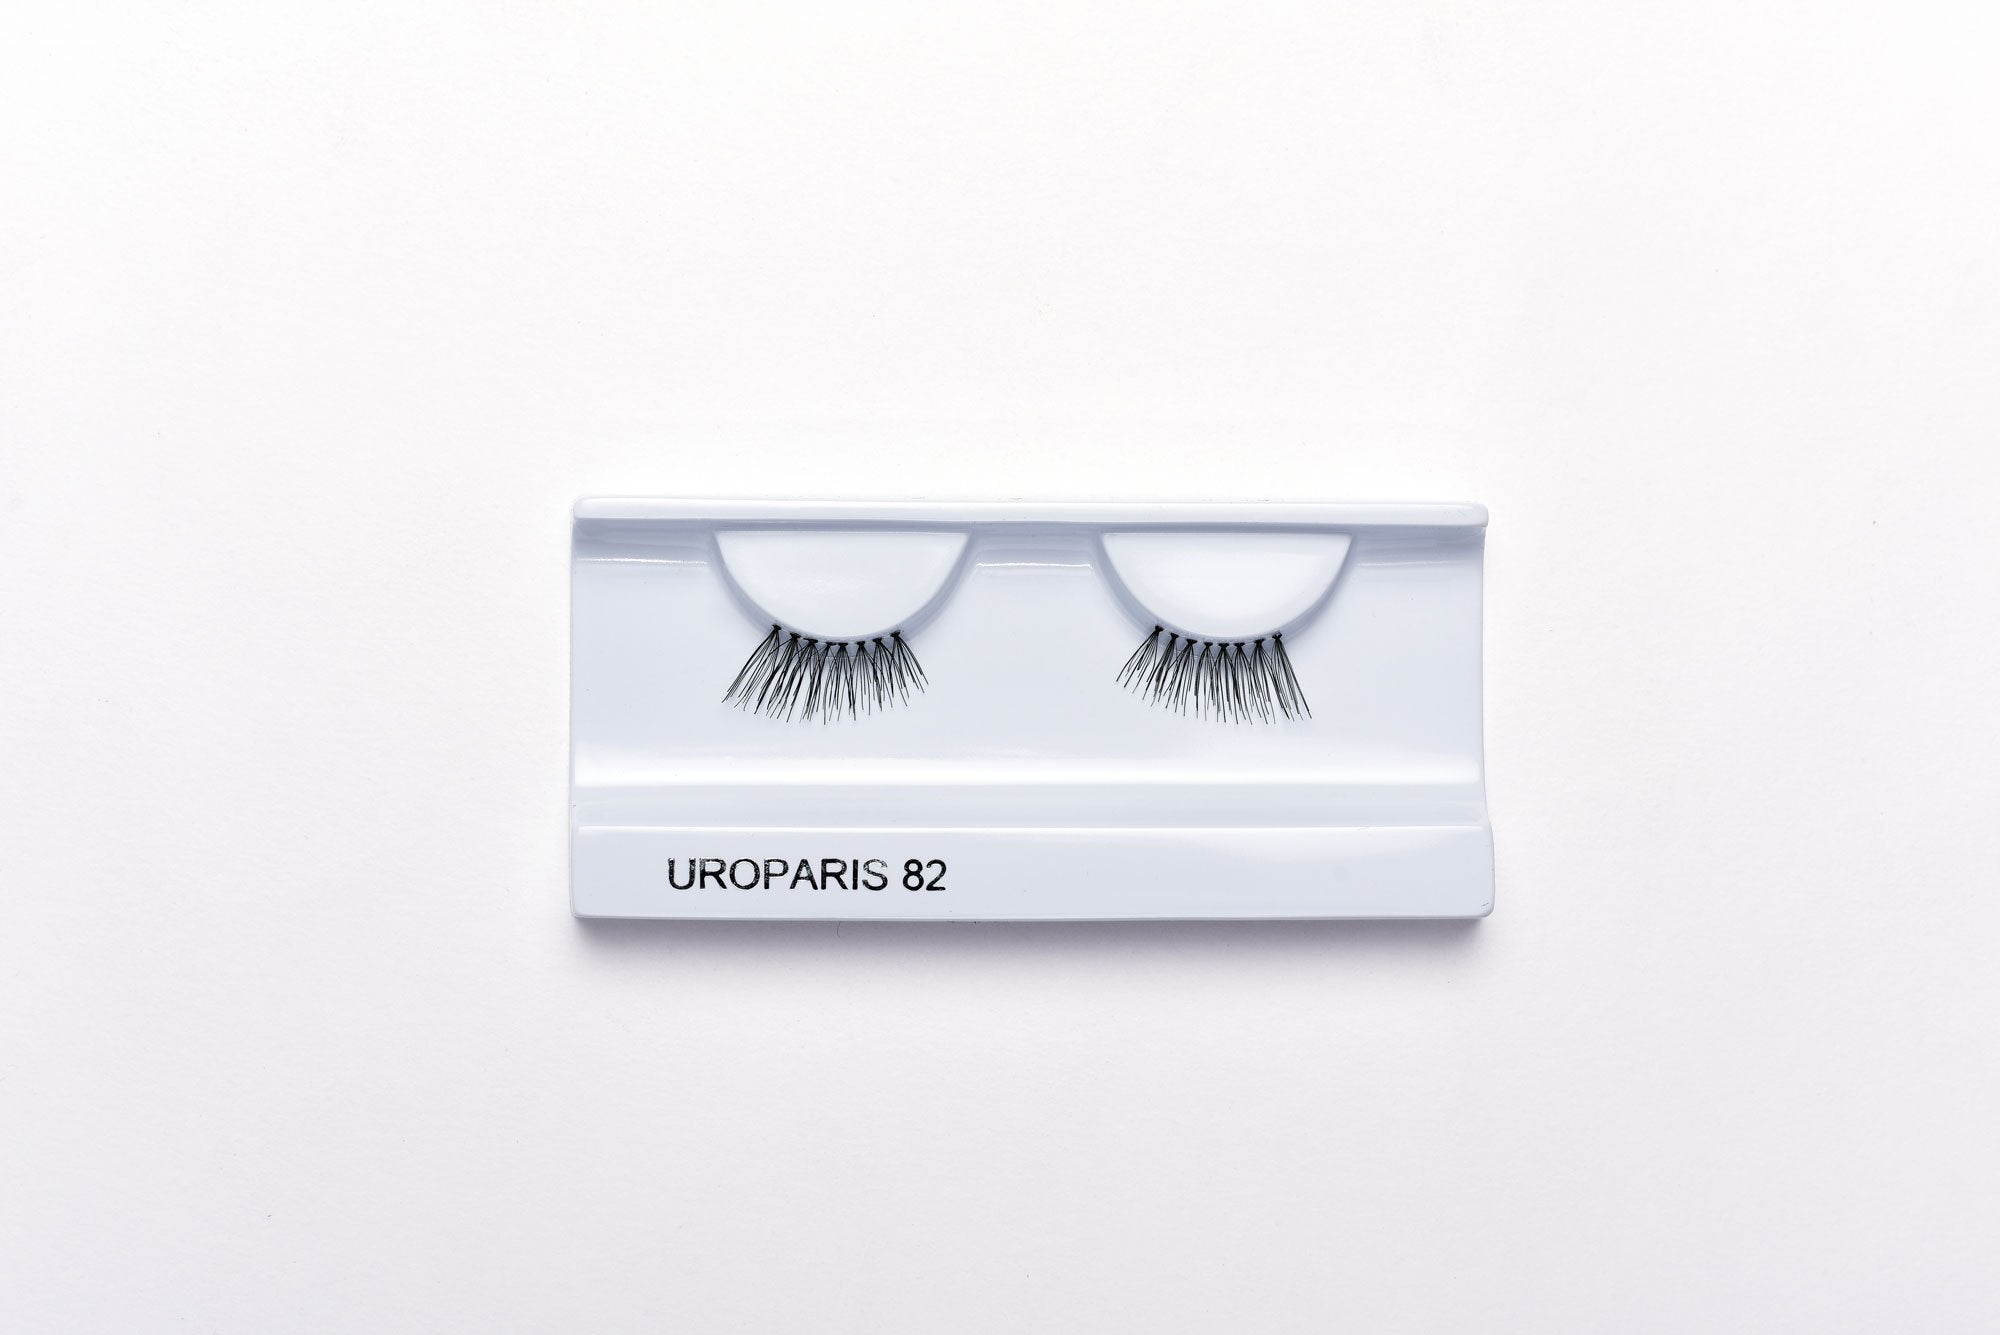 Uroparis Eyelashes 82